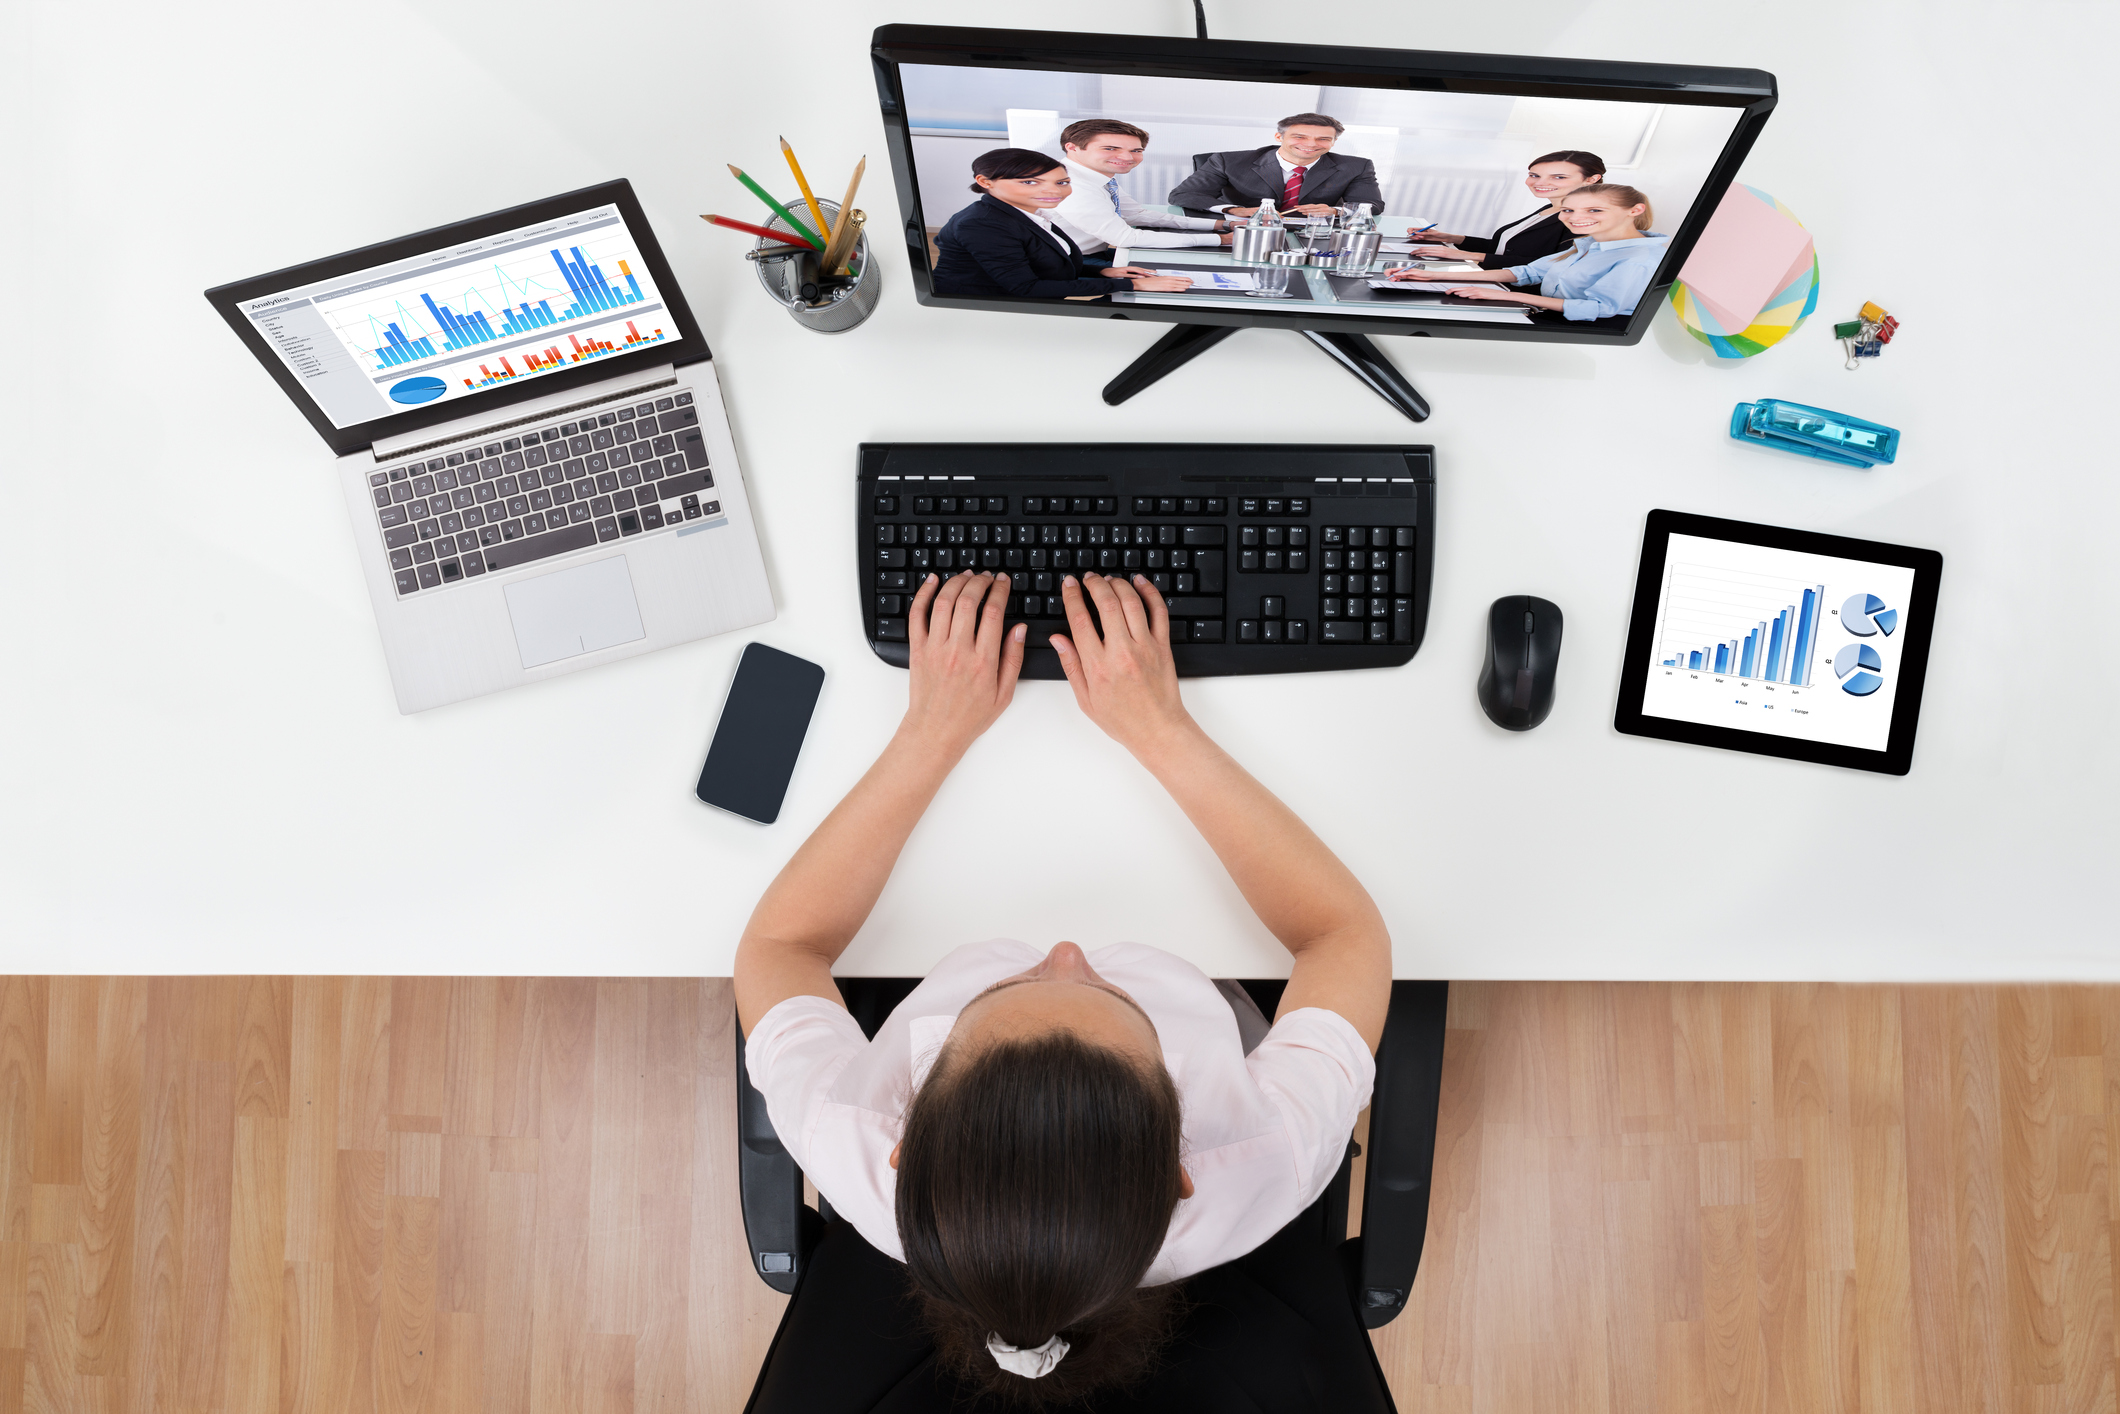 New Pioneer Travel >> 9 Ways to Become a Web Meeting Master | MeetingsNet